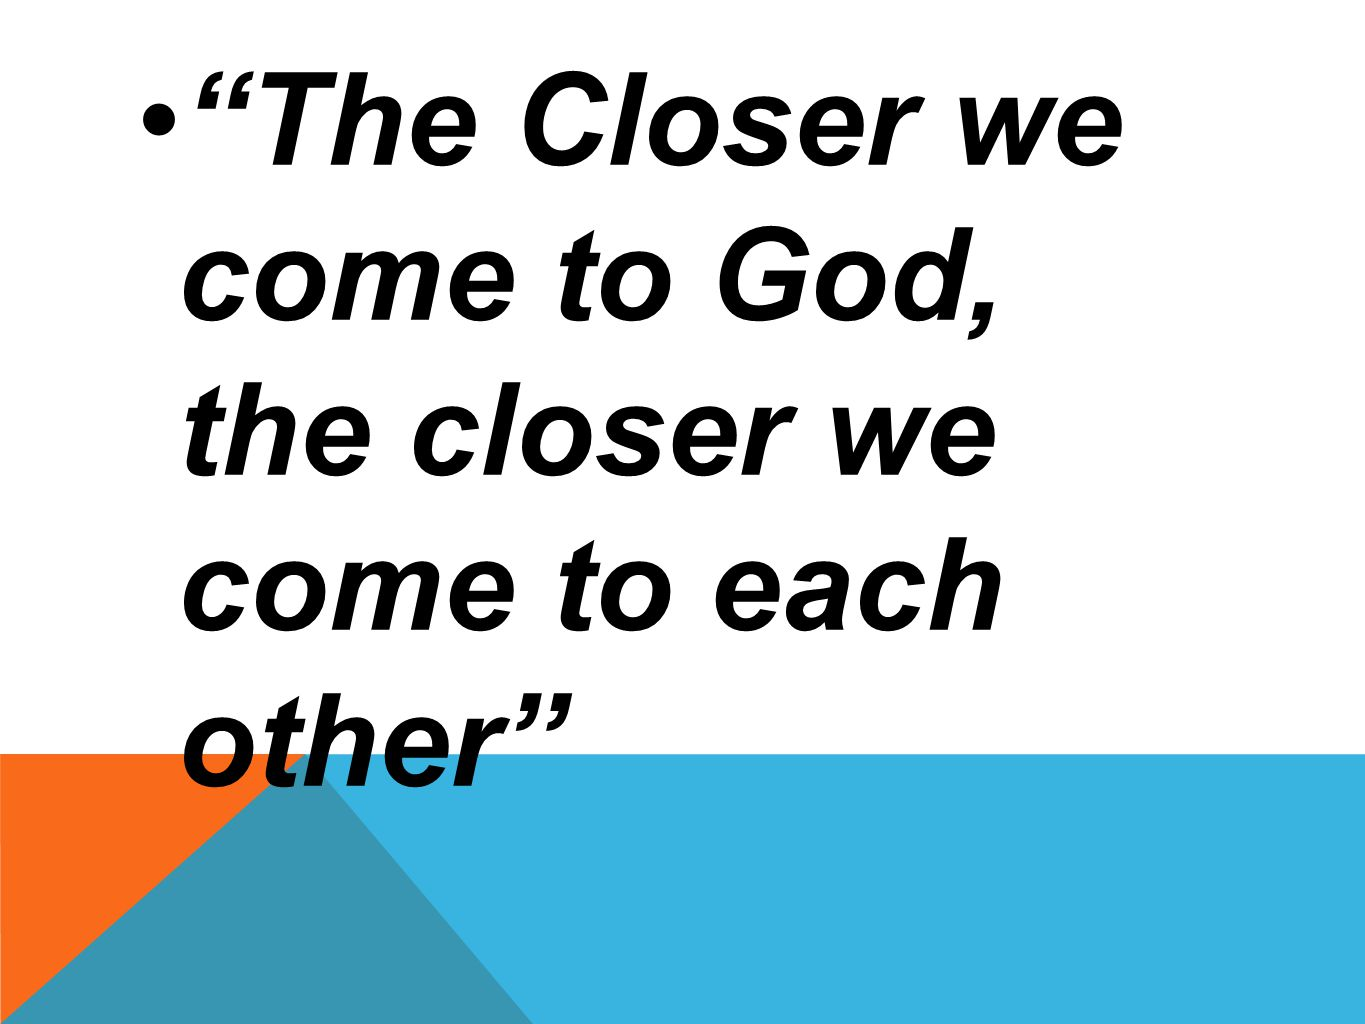 • The Closer we come to God, the closer we come to each other